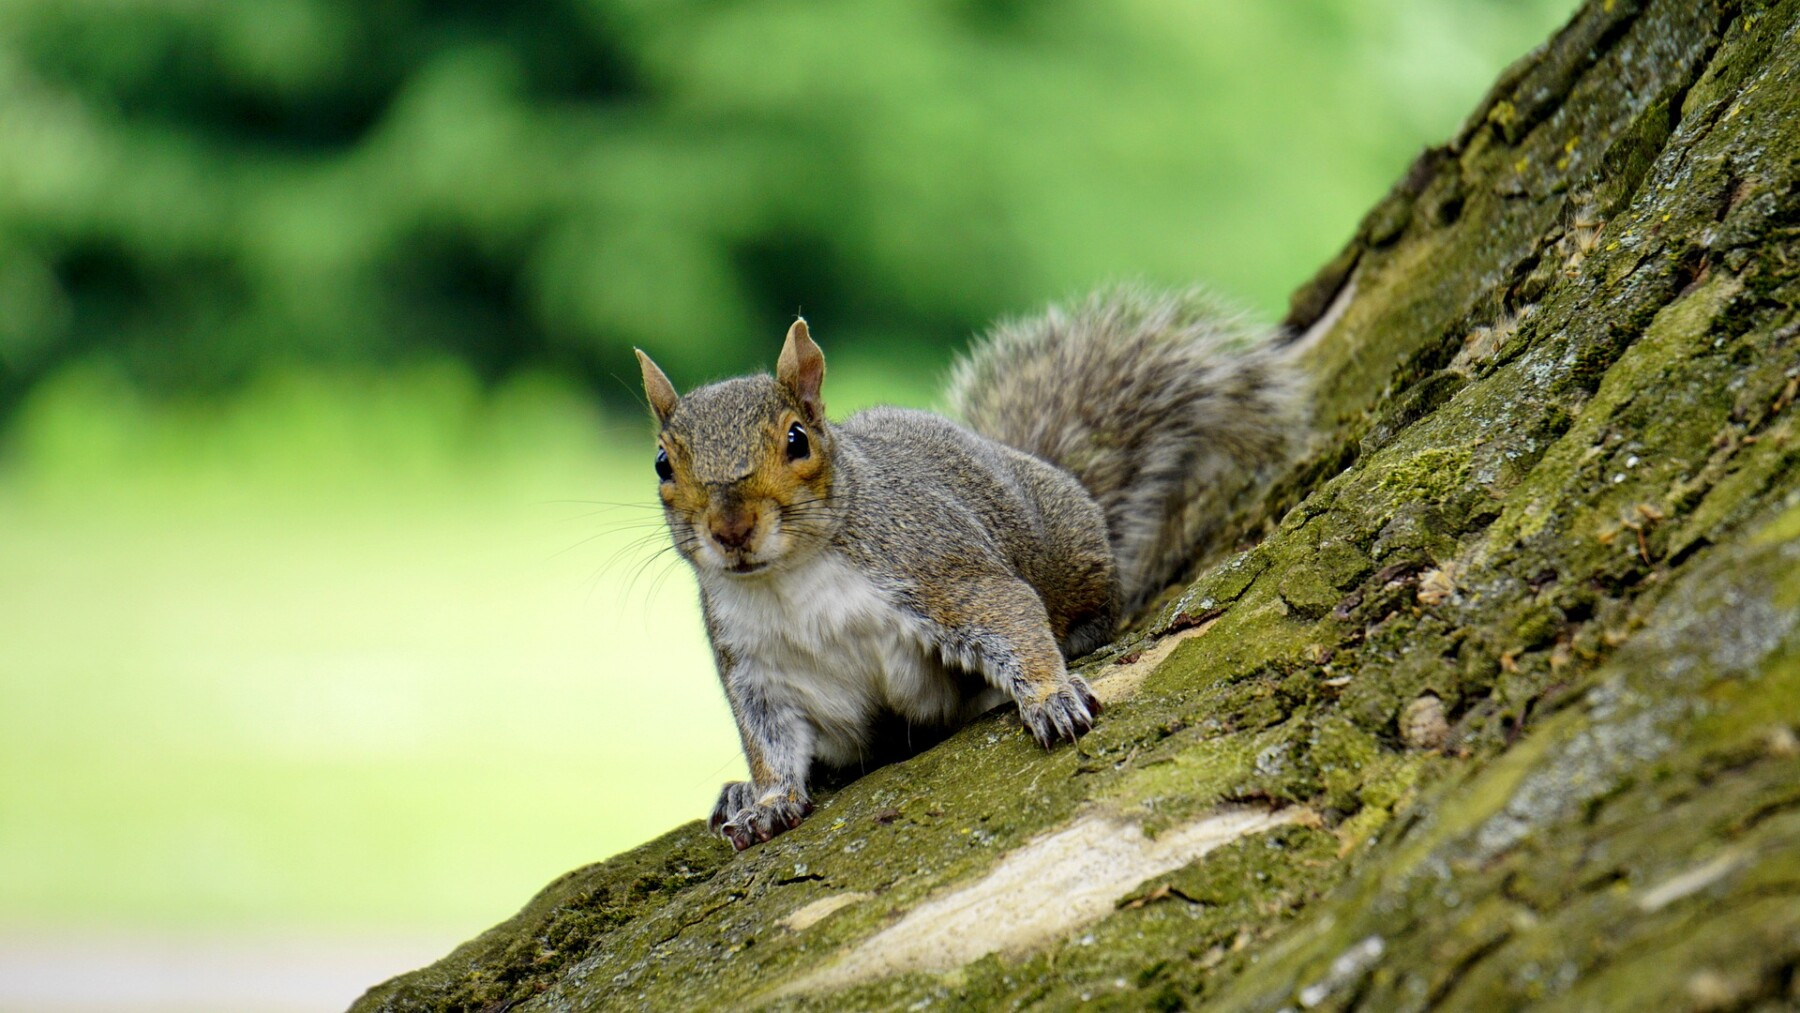 Look out, there's squirrels about...